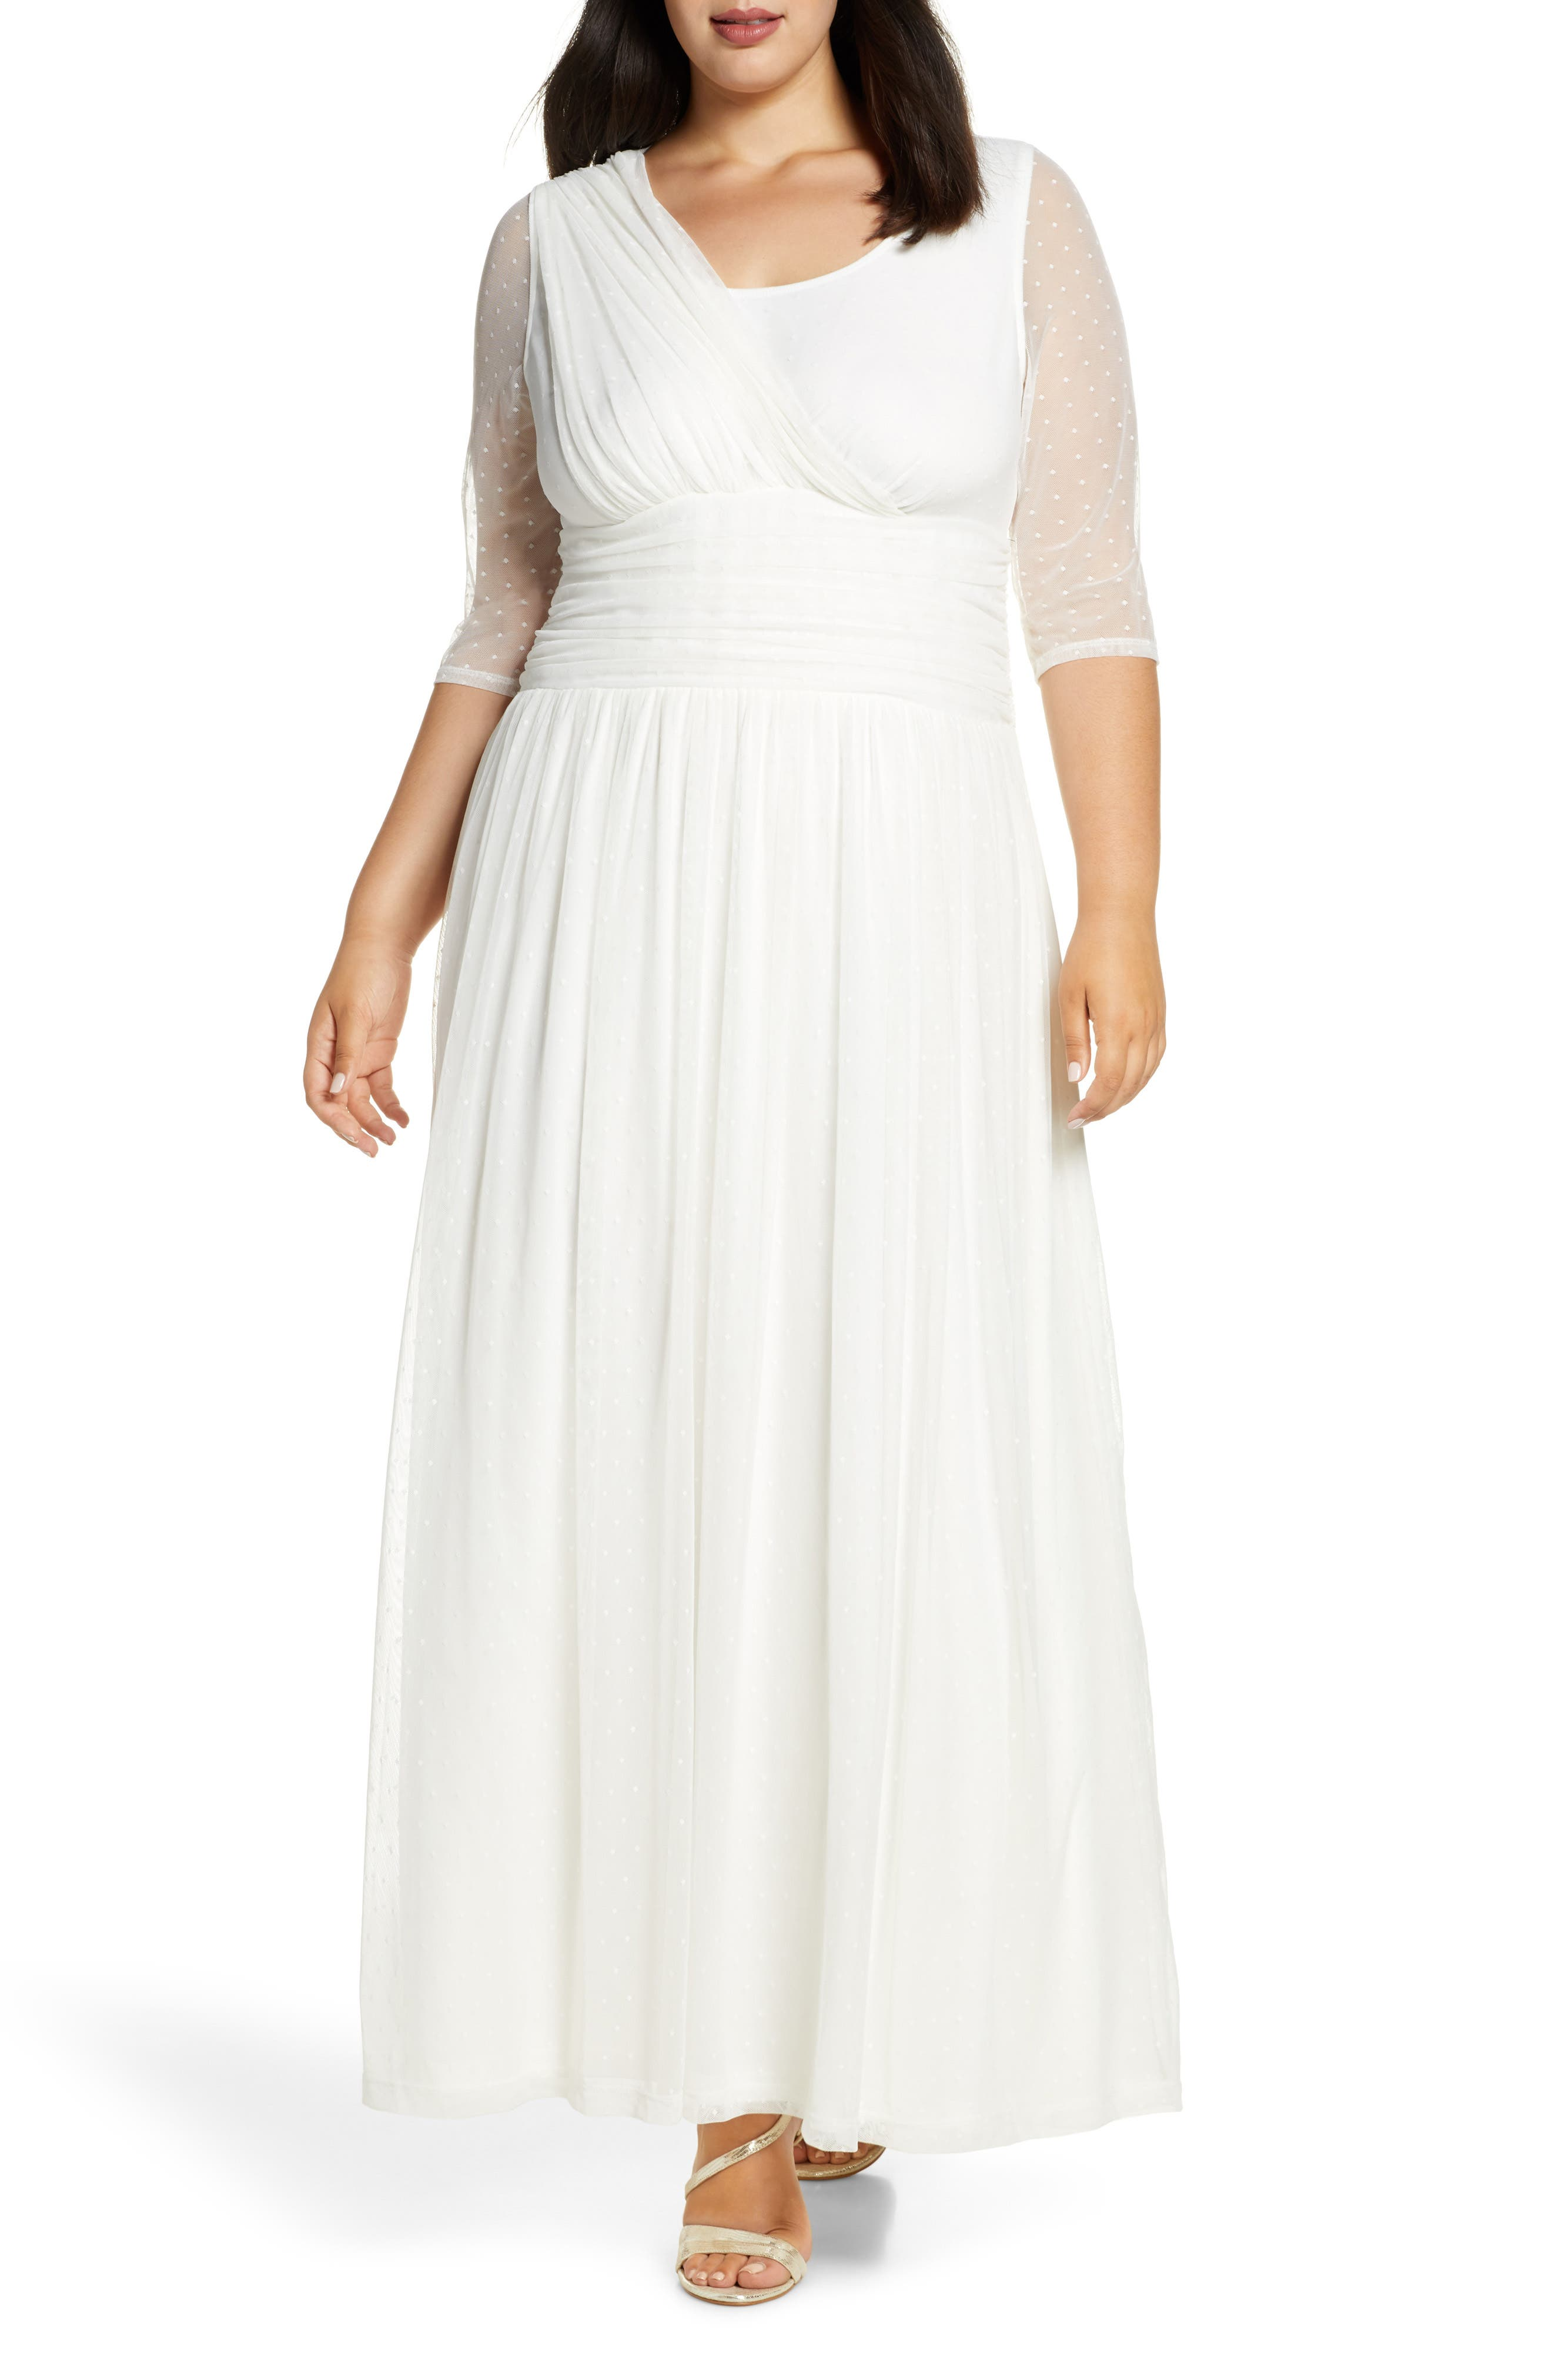 1940s Style Wedding Dresses | Classic Wedding Dresses Plus Size Womens Kiyonna Meant To Be Chic Gown $218.00 AT vintagedancer.com